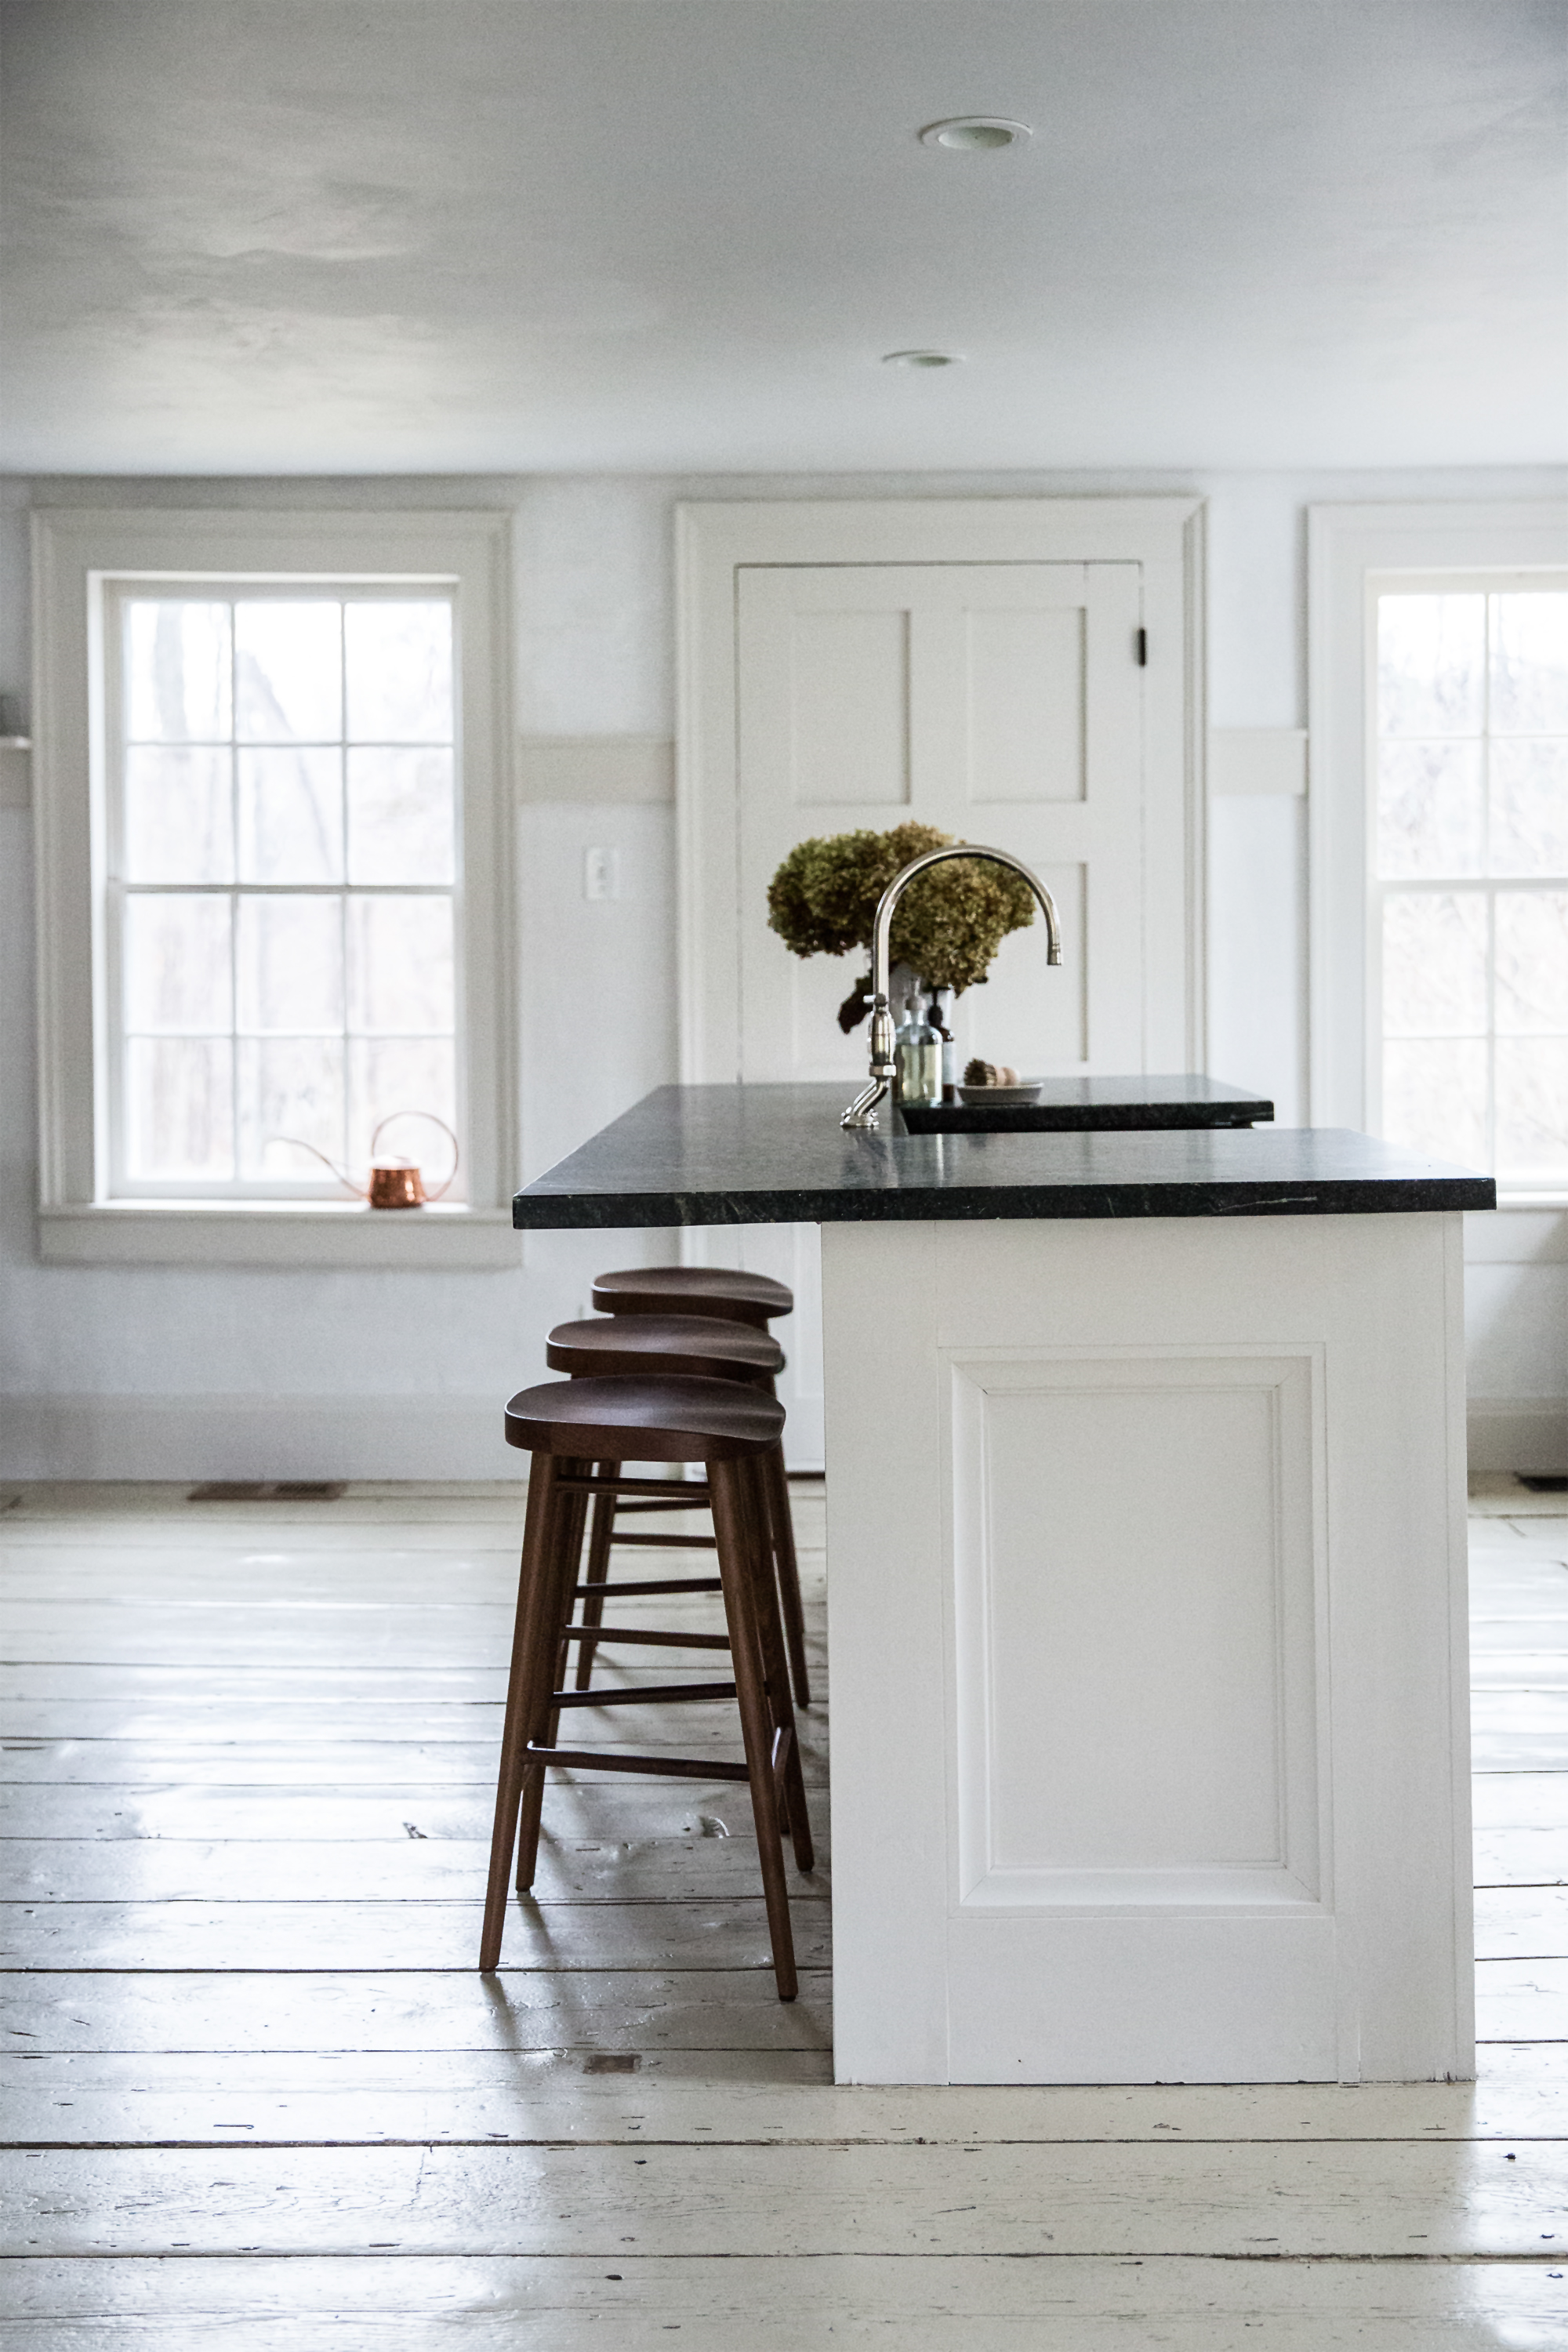 Jersey-Ice-Cream-Co.-Old-Chatham-House-Remodelista-kitchen-island-2